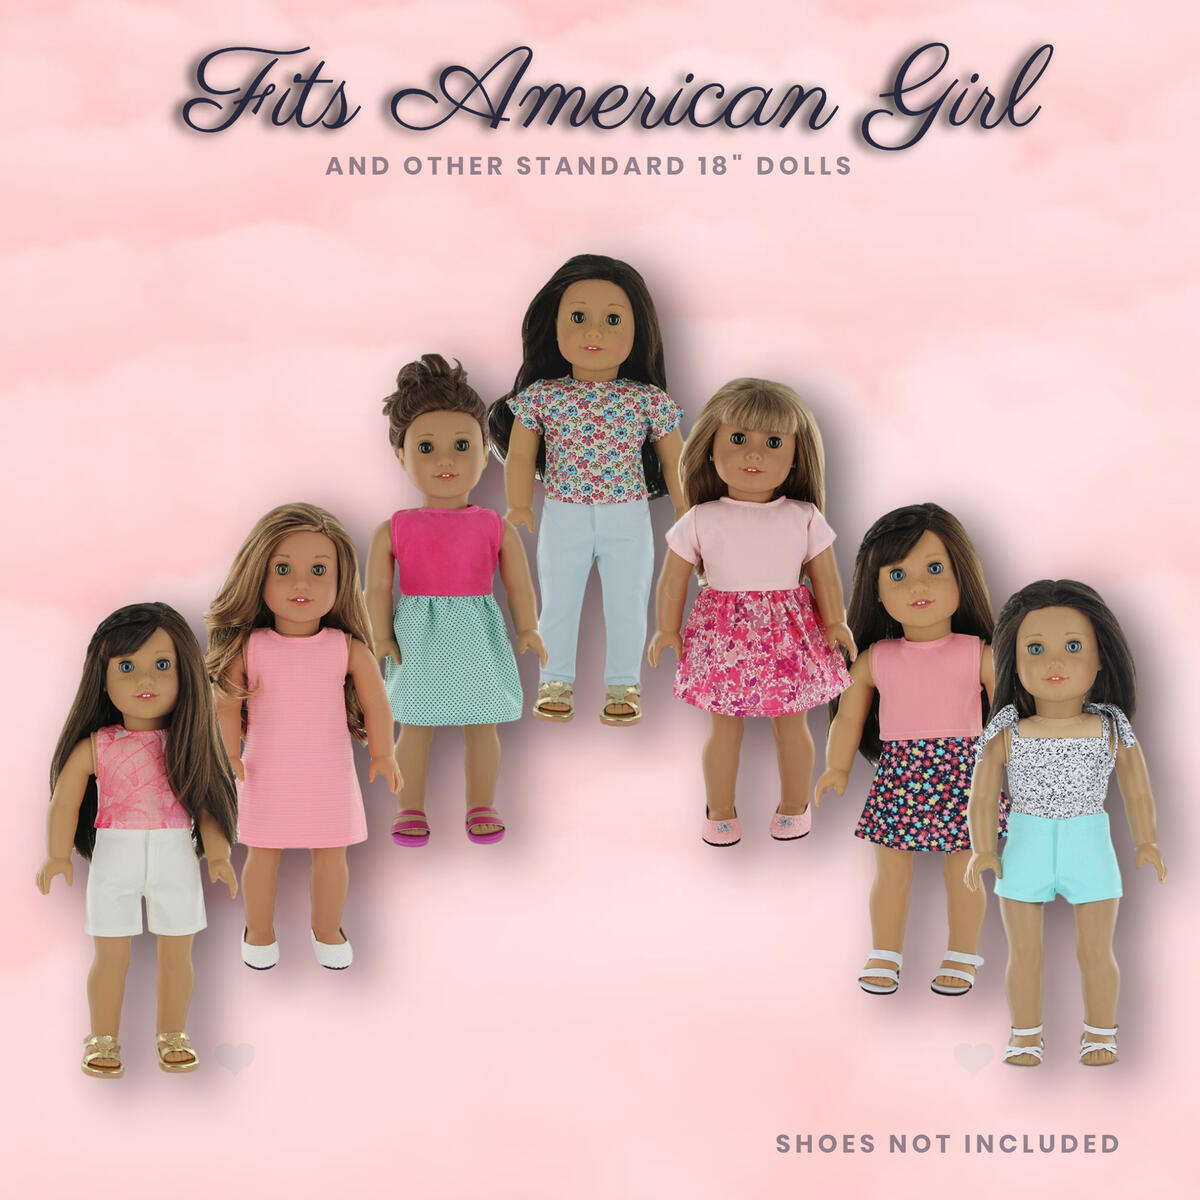 PZAS Toys 18 Inch Doll Clothes - Fits American Girl Doll Clothes- Wardrobe Makeover, 7 Outfits